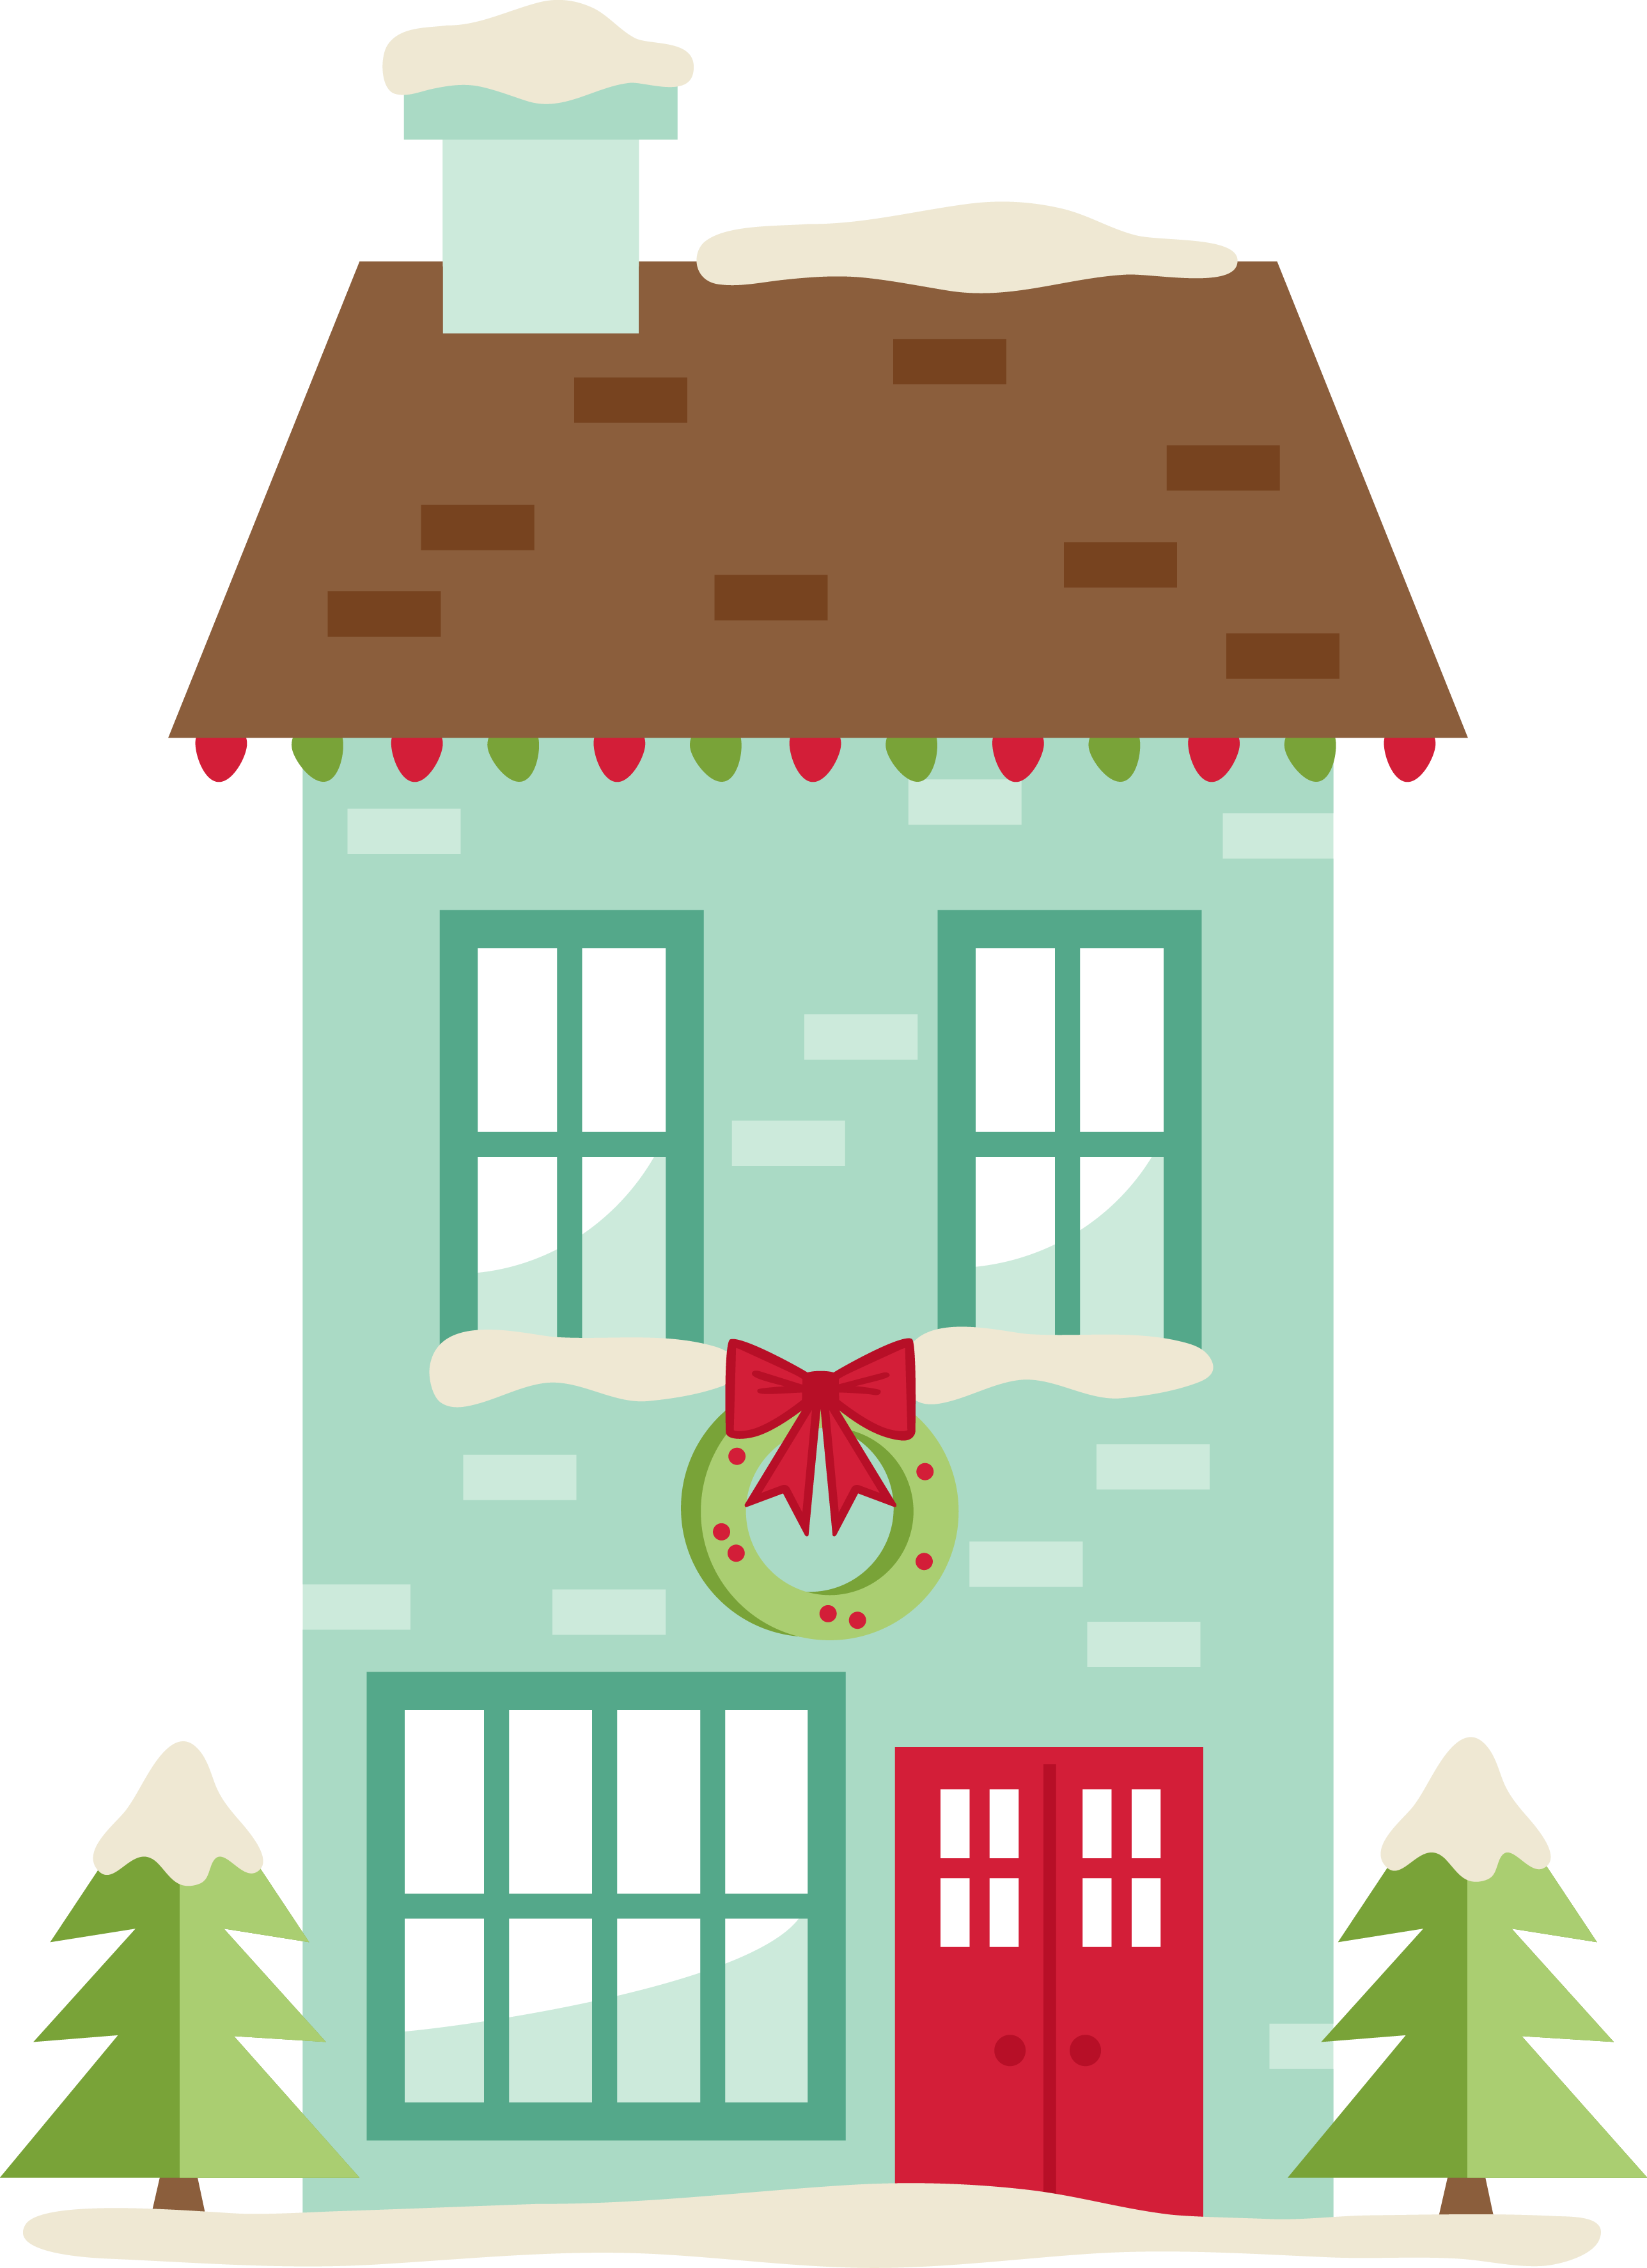 Village images gallery for. Houses clipart easter